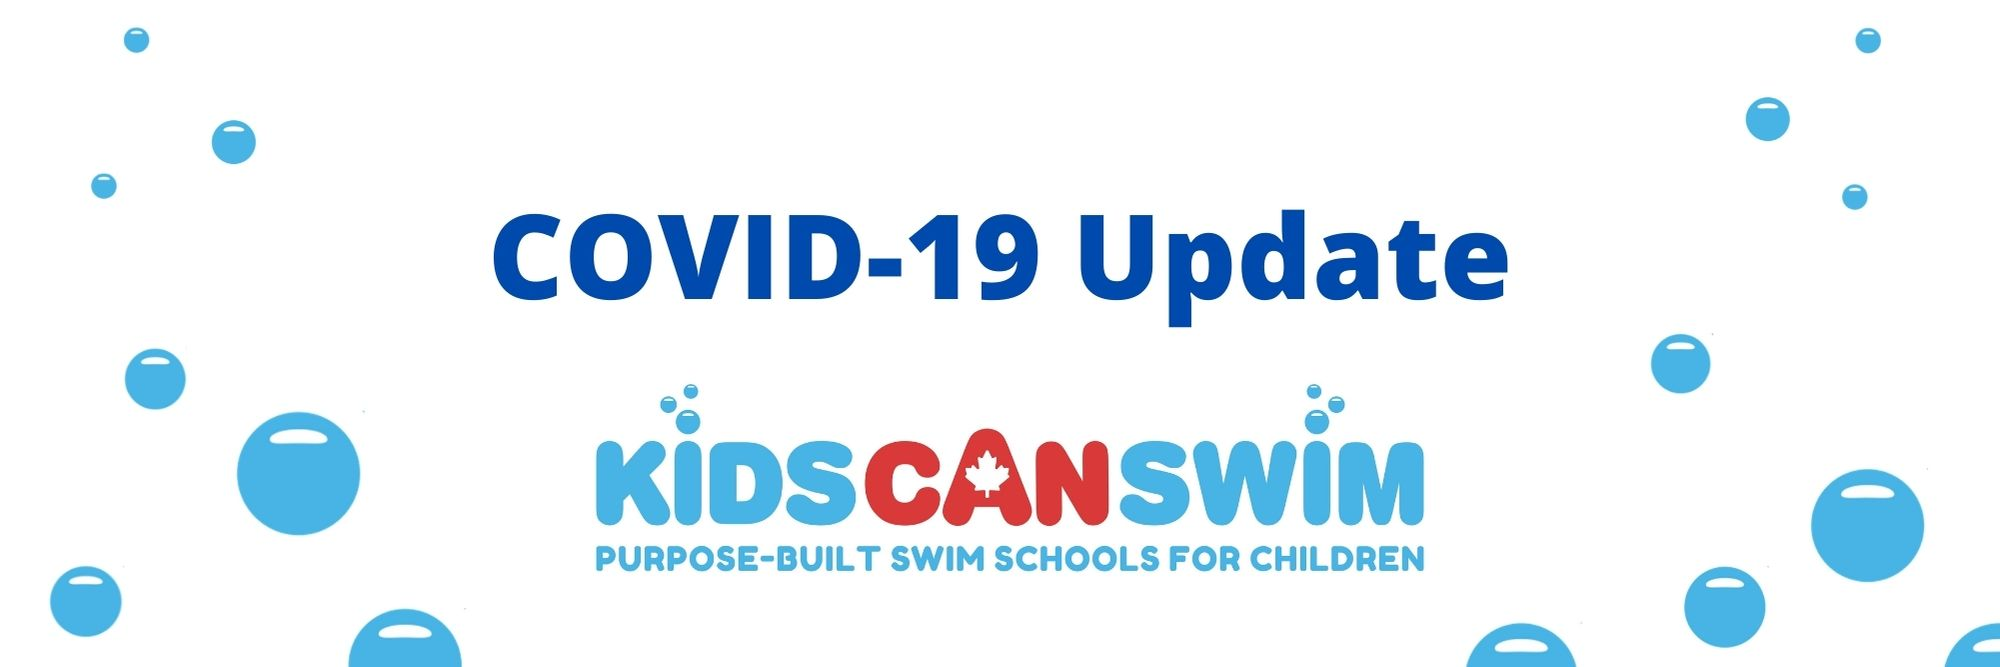 KidsCanSwim Introduces Mandatory COVID-19 Vaccination Policy For All Team Members And New Hires